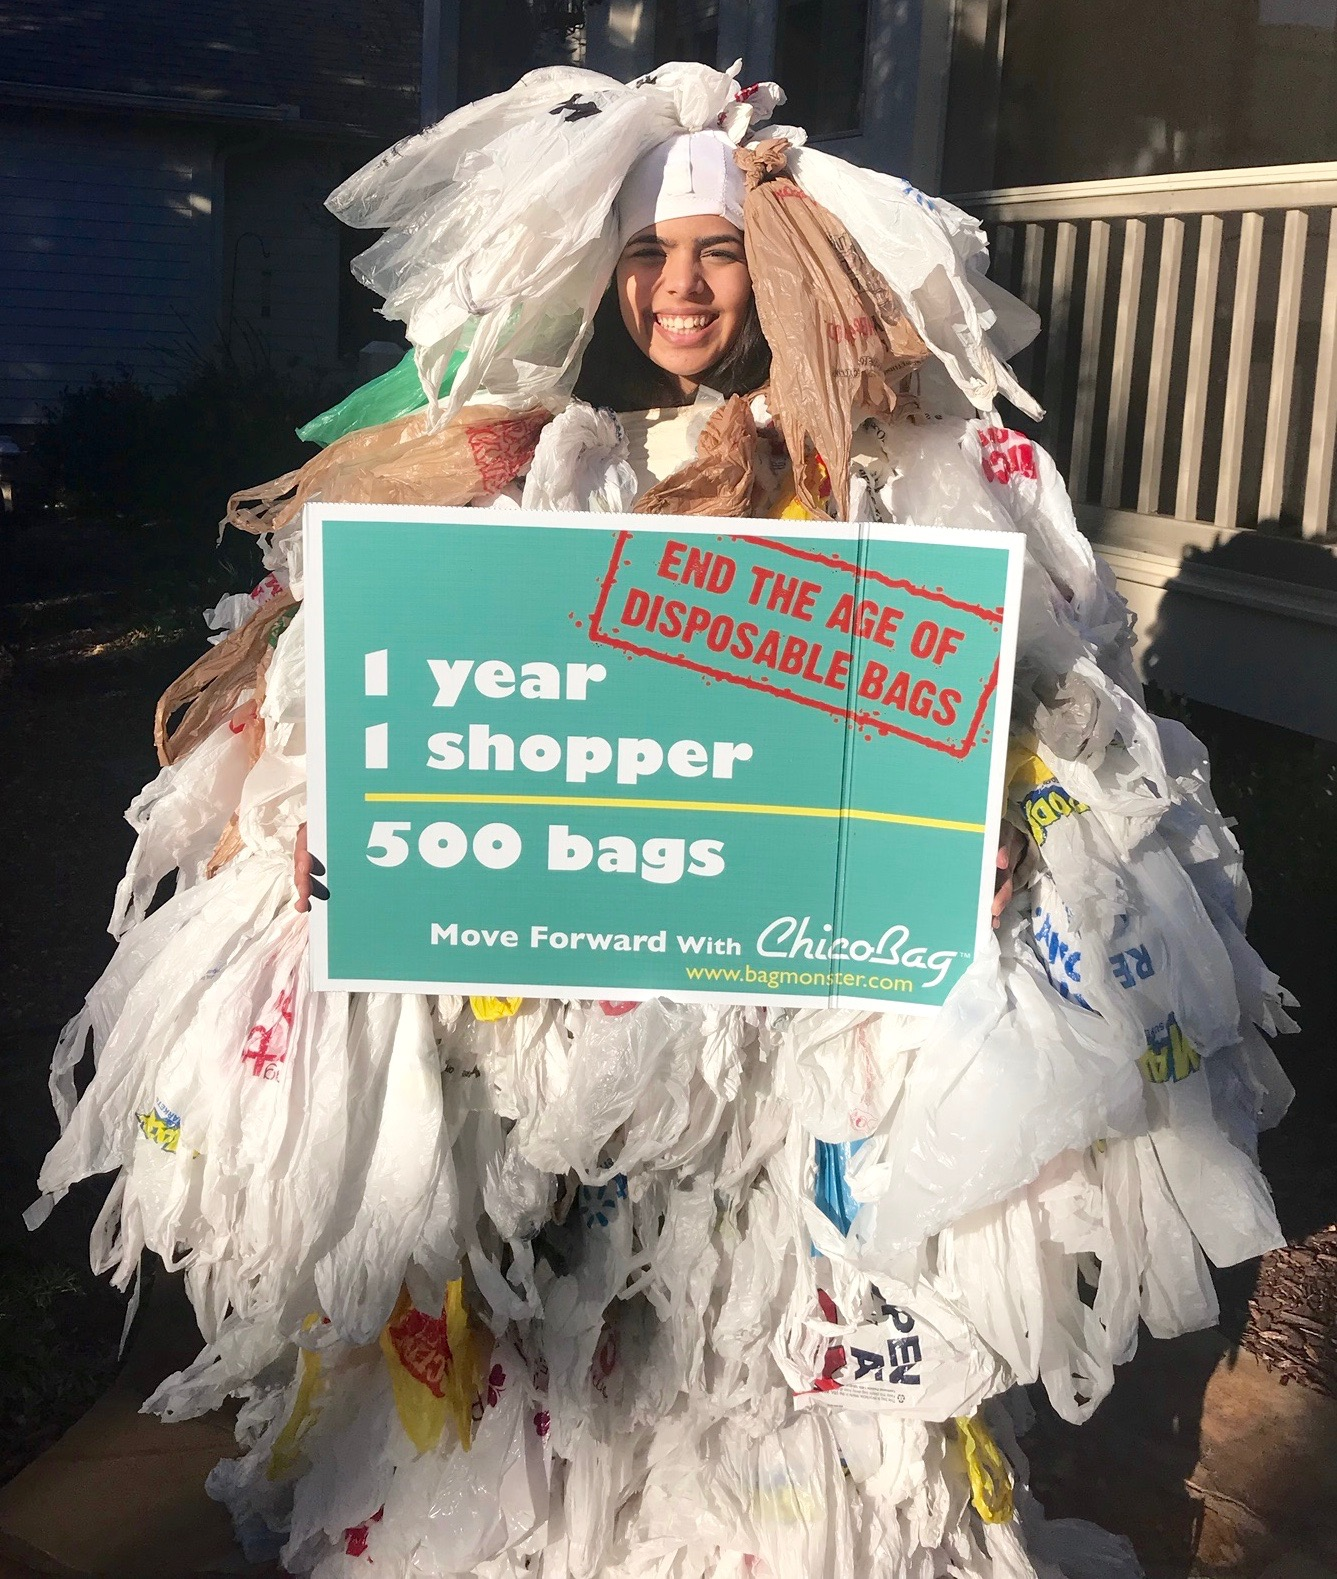 Hannah Testa, founder of hannah4change, has been educated thousands of people about the harmful effects of plastic pollution since she was 11. She is particularly focused on single-use disposable plastics such as plastic bags, bottles, and straws because these items we use for convenience are destroying the planet and its precious animals.